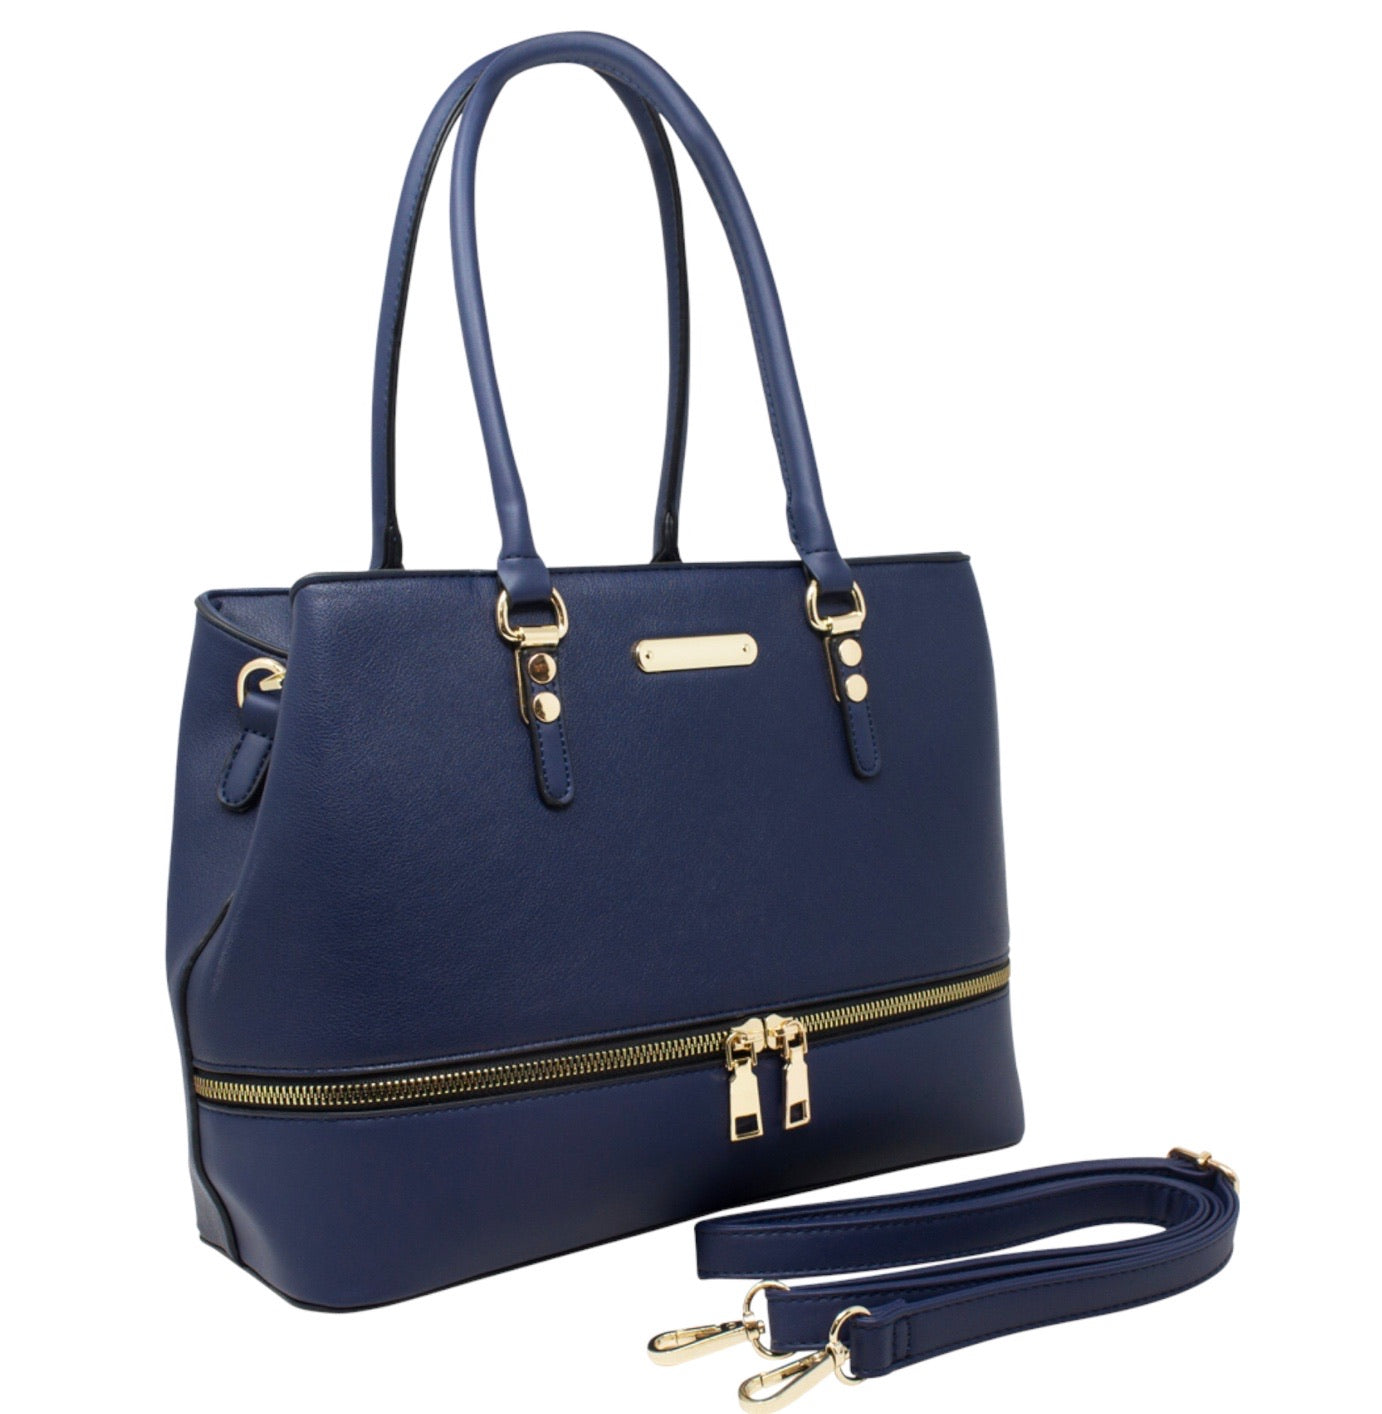 Zipped bottom handbag